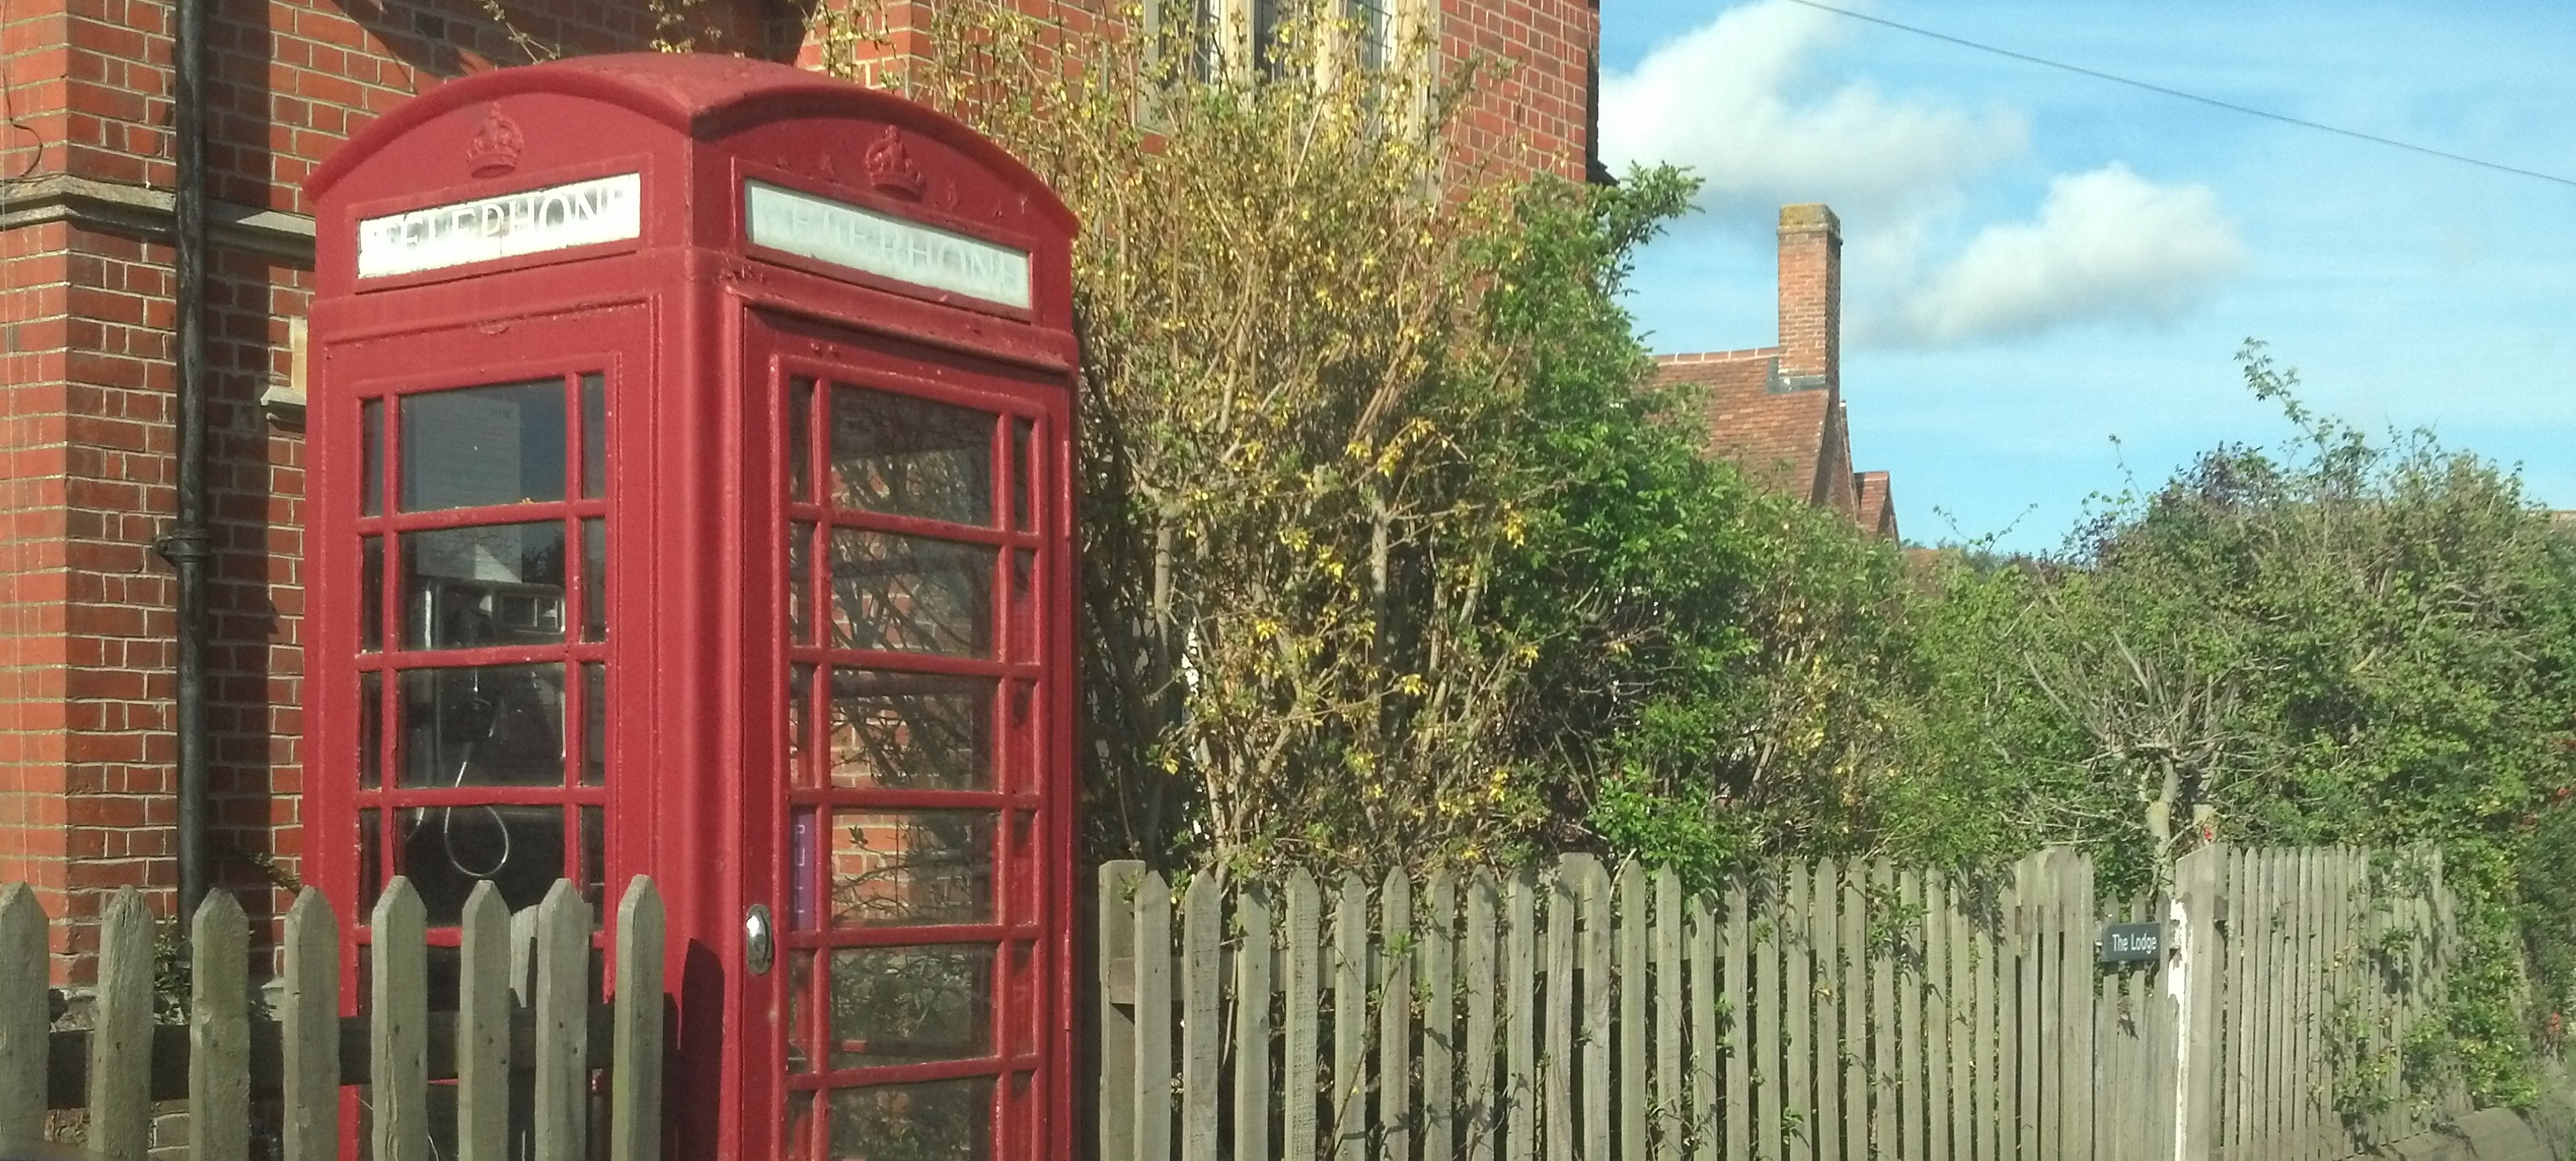 Telephone box, Mapledurham, south Oxfordshire, UK